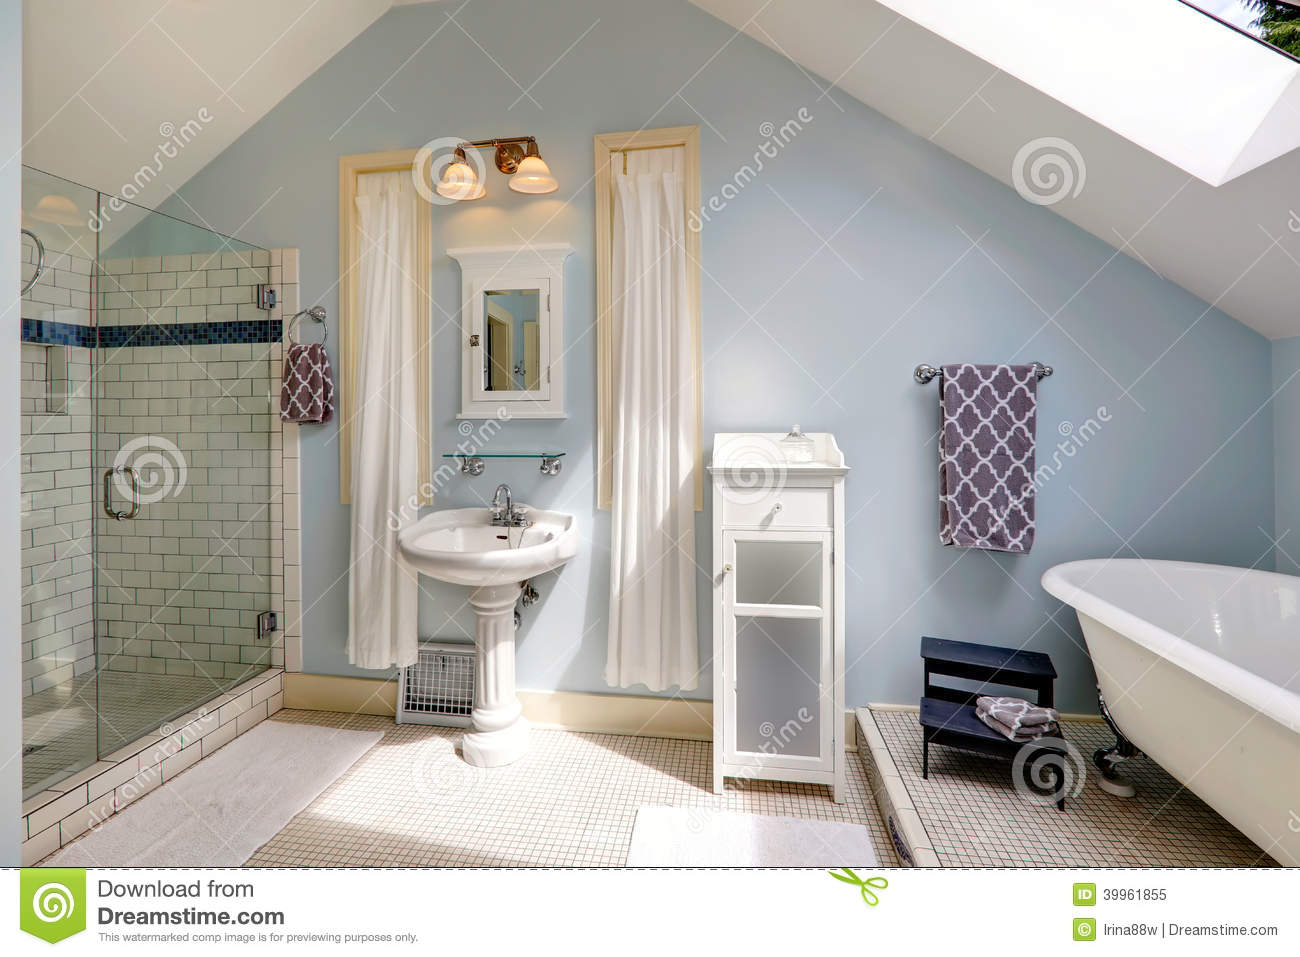 Picture of: Velux Bathroom With Antique Bath Tub Stock Image Image Of Cabinet Space 39961855